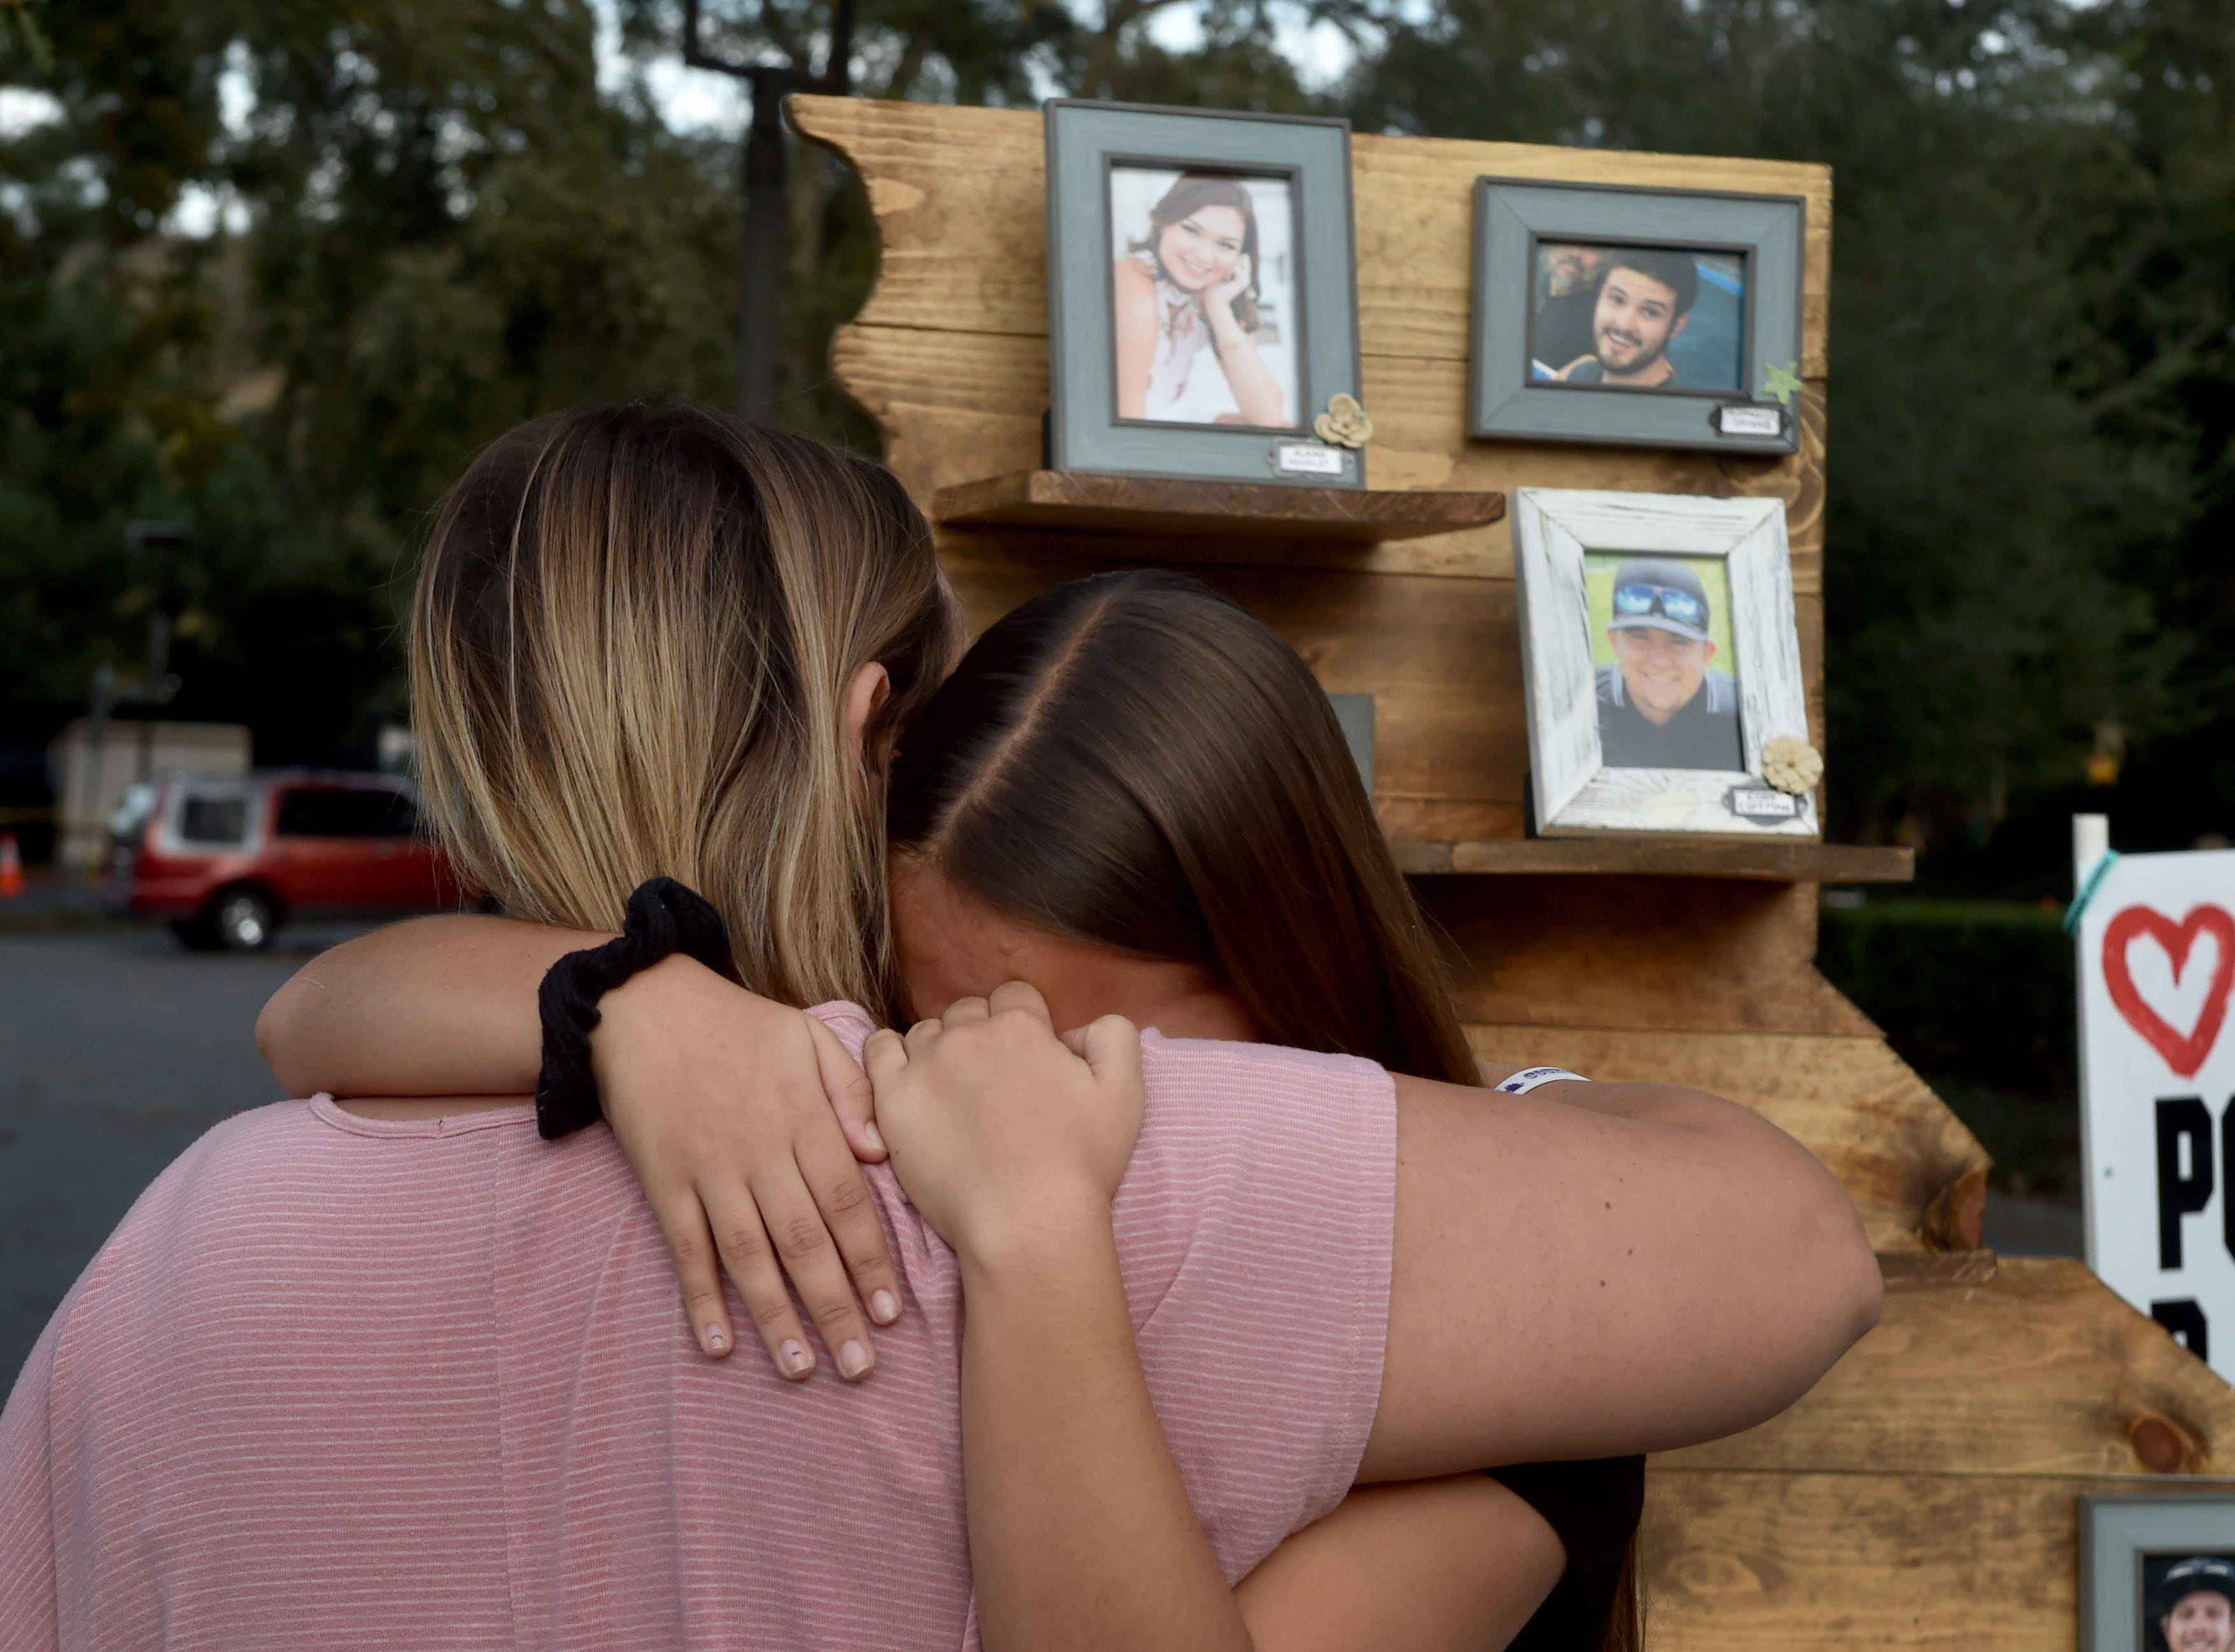 Mia Carlton, of Simi Valley, gets a hug from her mother on Thursday after placing a photo of her cousin Cody Gifford-Coffman on a display at a memorial wall near the Borderline Bar & Grill in Thousand Oaks, where he was killed Nov. 7.